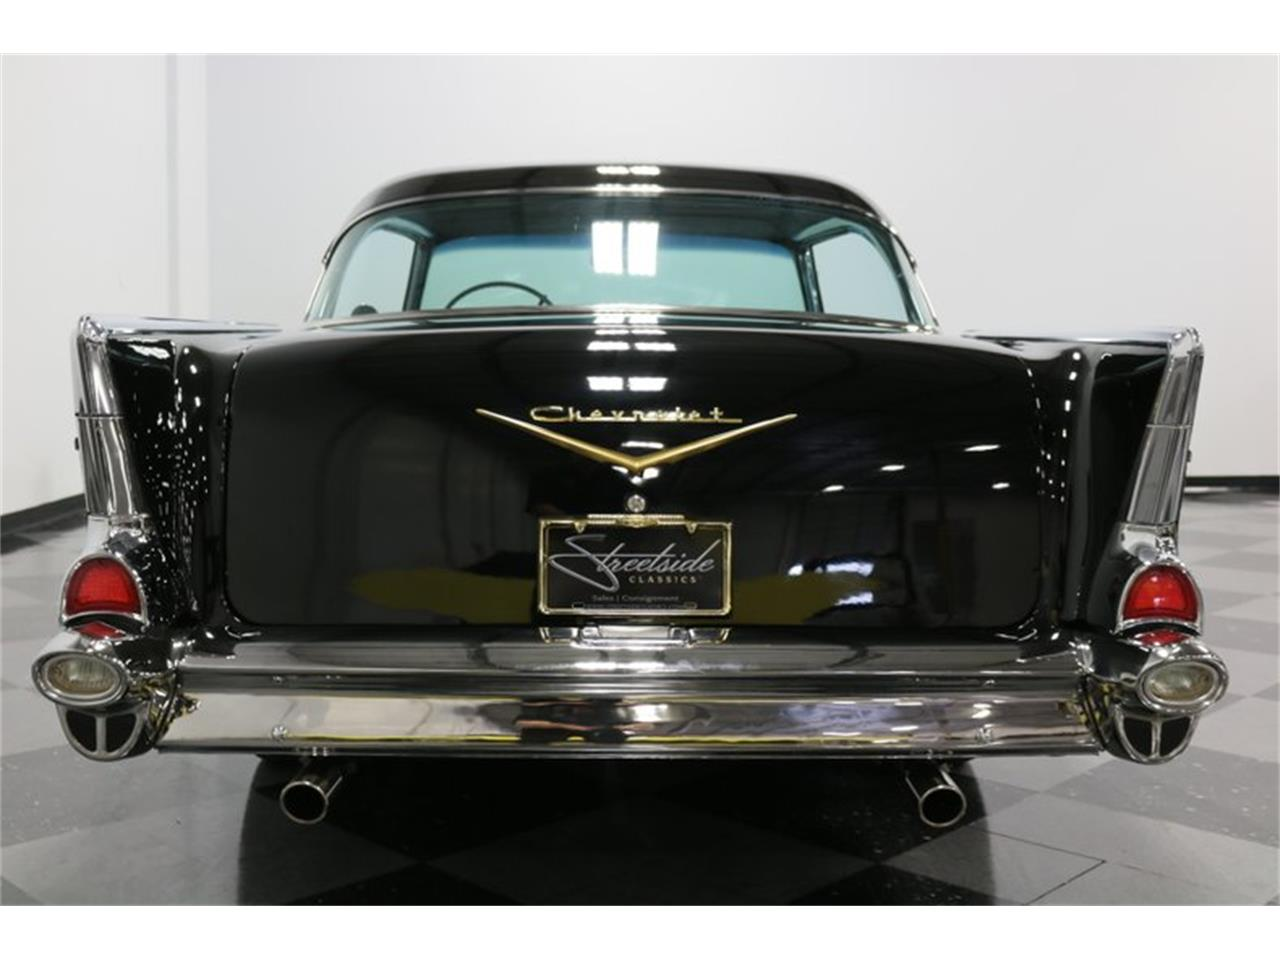 Large Picture of '57 Chevrolet Bel Air located in Ft Worth Texas - $48,995.00 Offered by Streetside Classics - Dallas / Fort Worth - Q46F